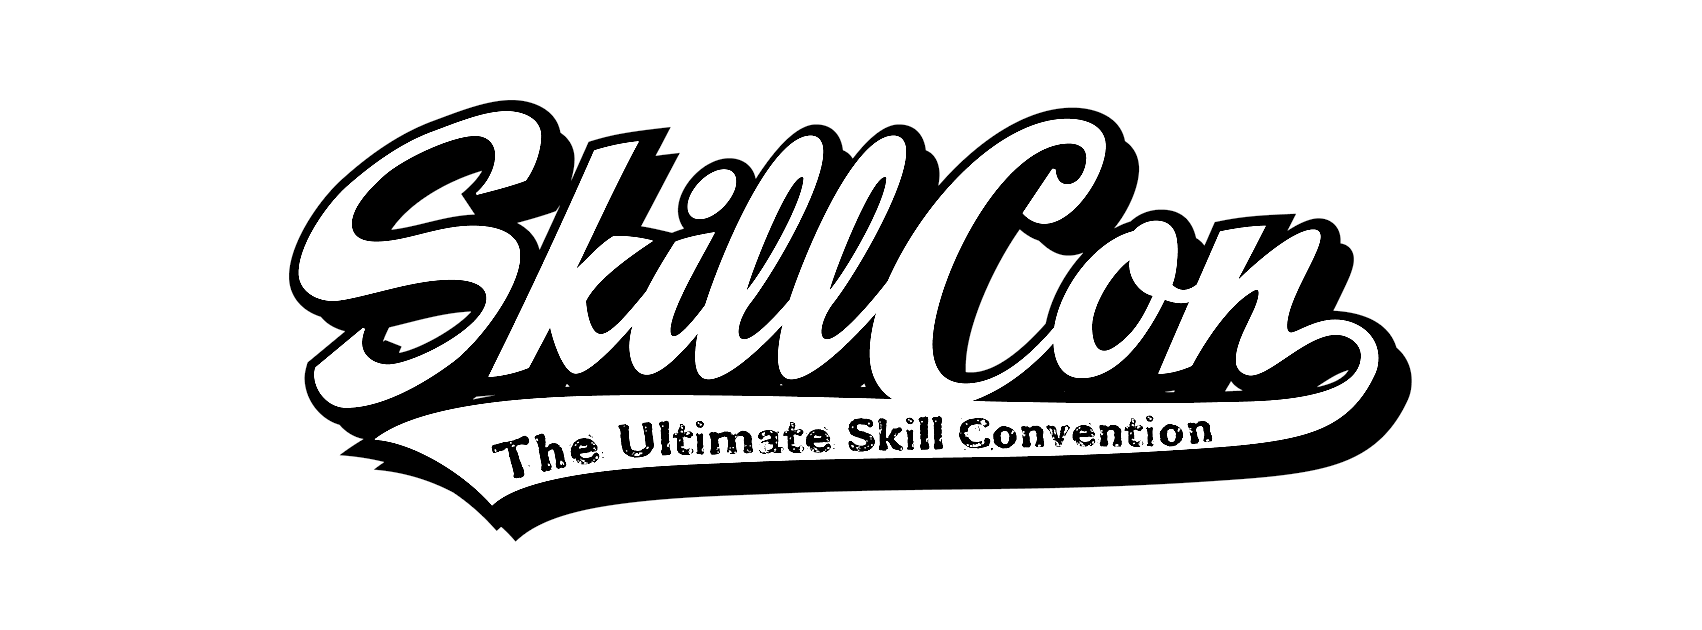 SkillConEventBanner white.png